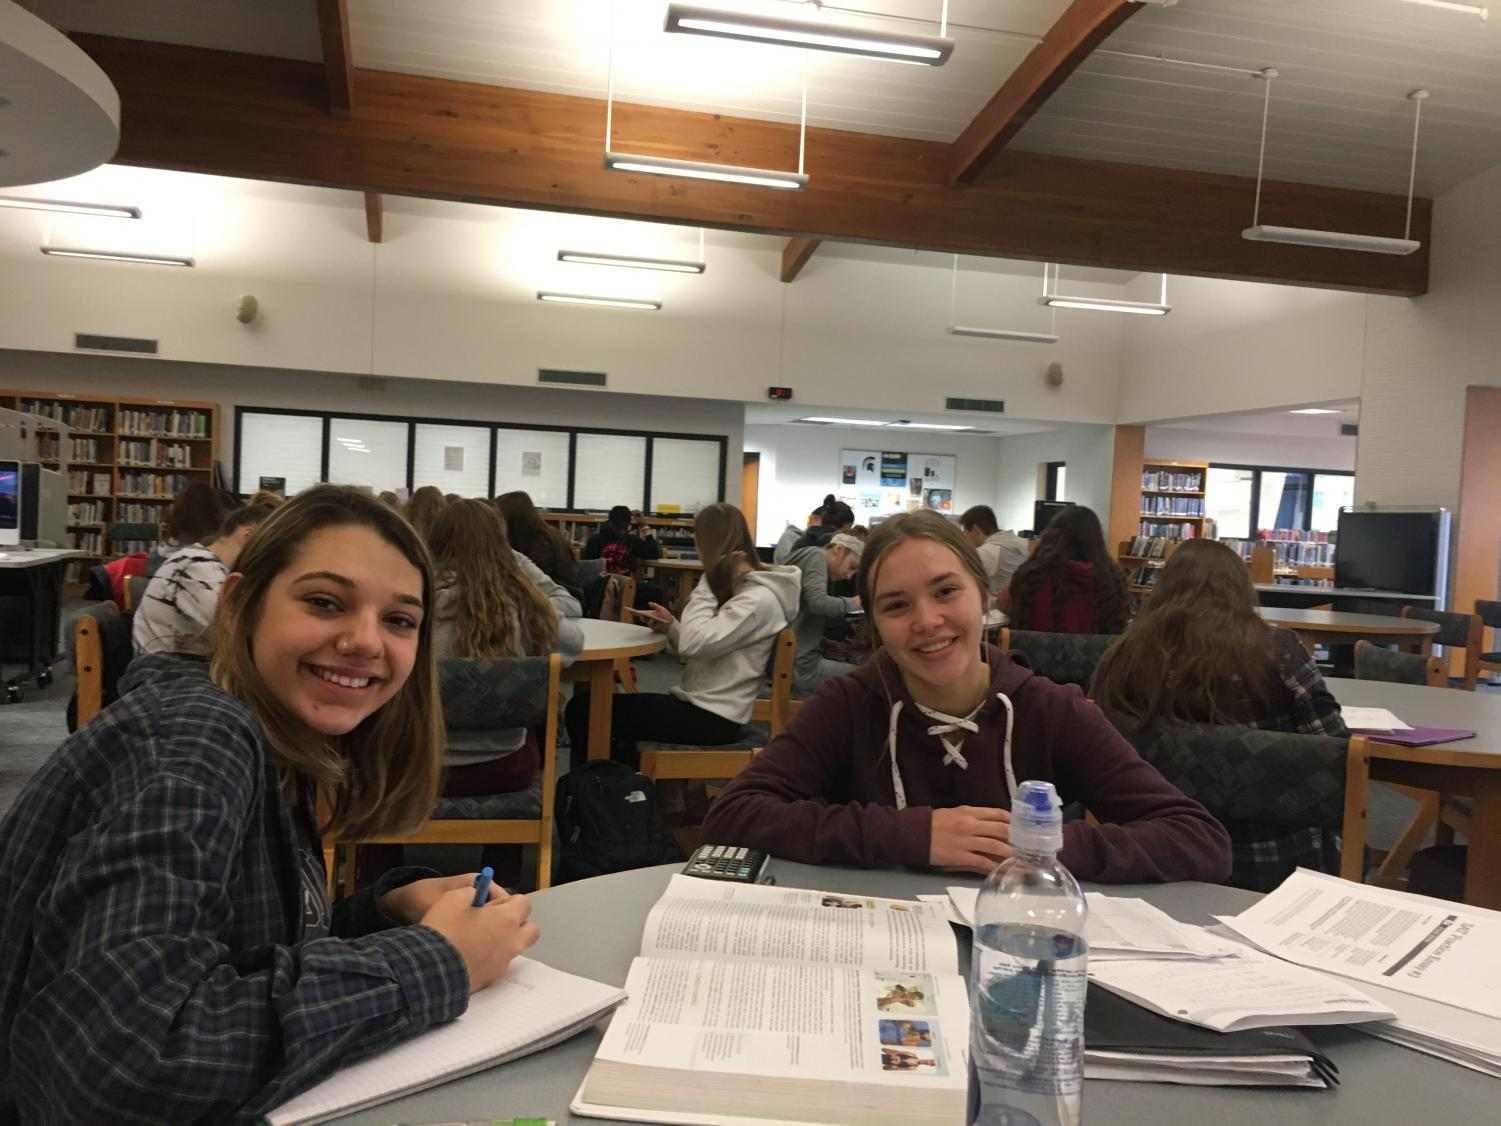 Grand ledge students Abby  Hernandez and Brianna Stange, both 11th grade students. they are working hard on there school work.